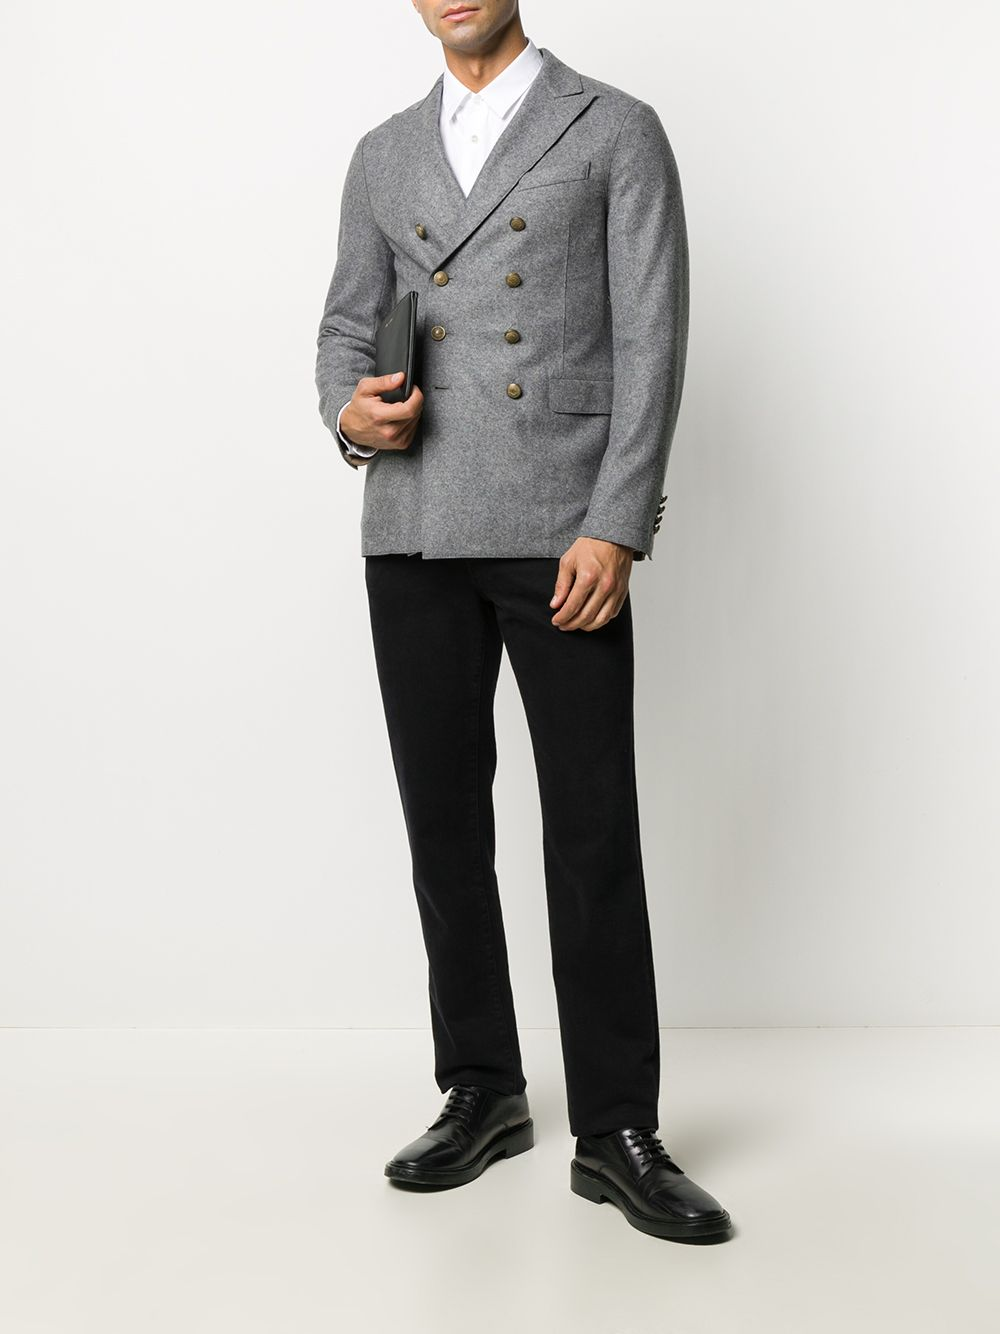 Grey double-breasted blazer featuring embossed gold-tone buttons ELEVENTY |  | B70GIAB08-JAC2401815